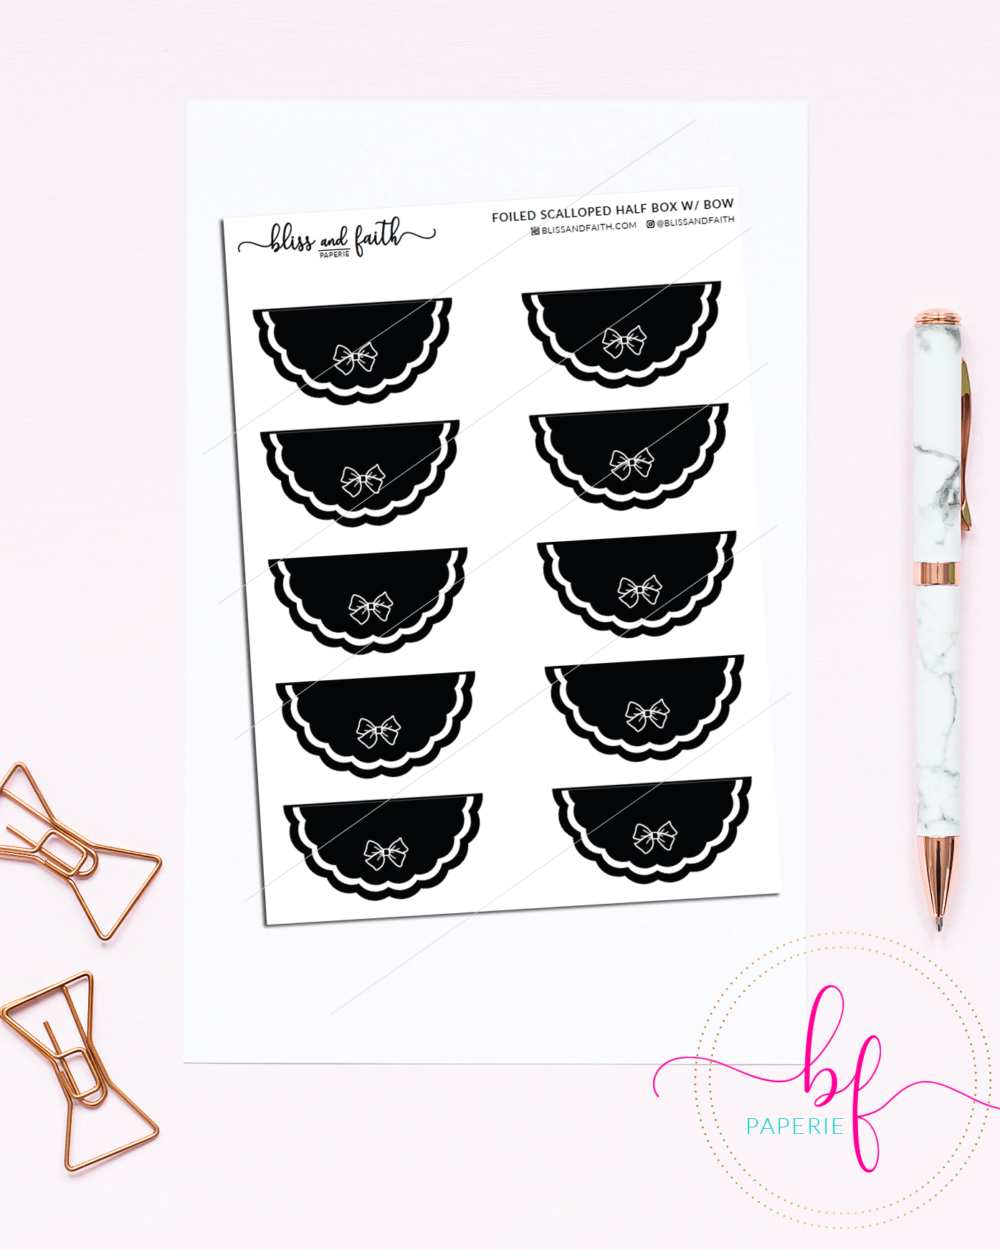 Scalloped Edged Stickers Foiled Half Box | BlissandFaith.com